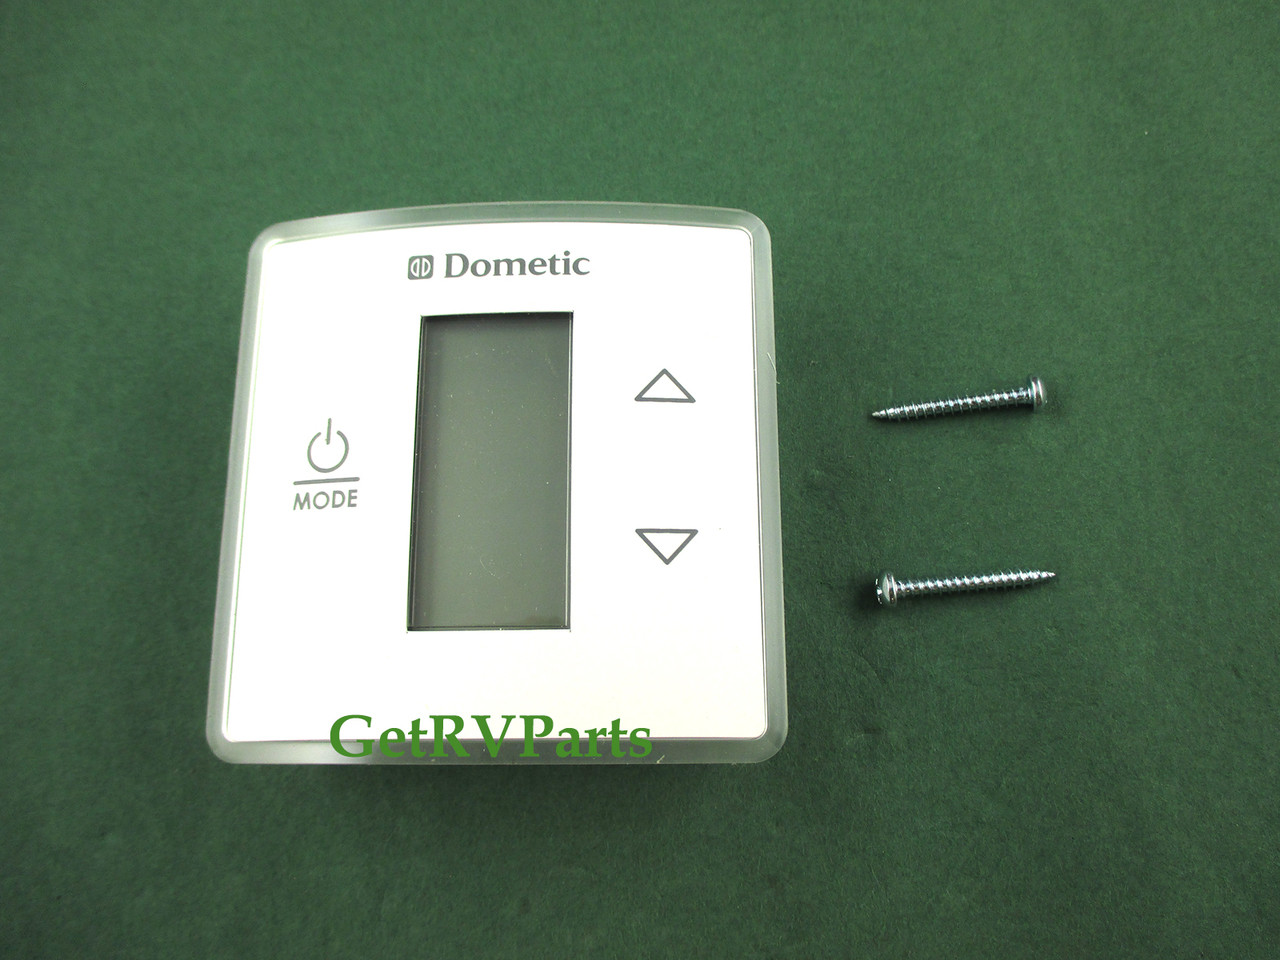 medium resolution of dometic 331625000 rv air conditioner cool furnace thermostat image 1 loading zoom